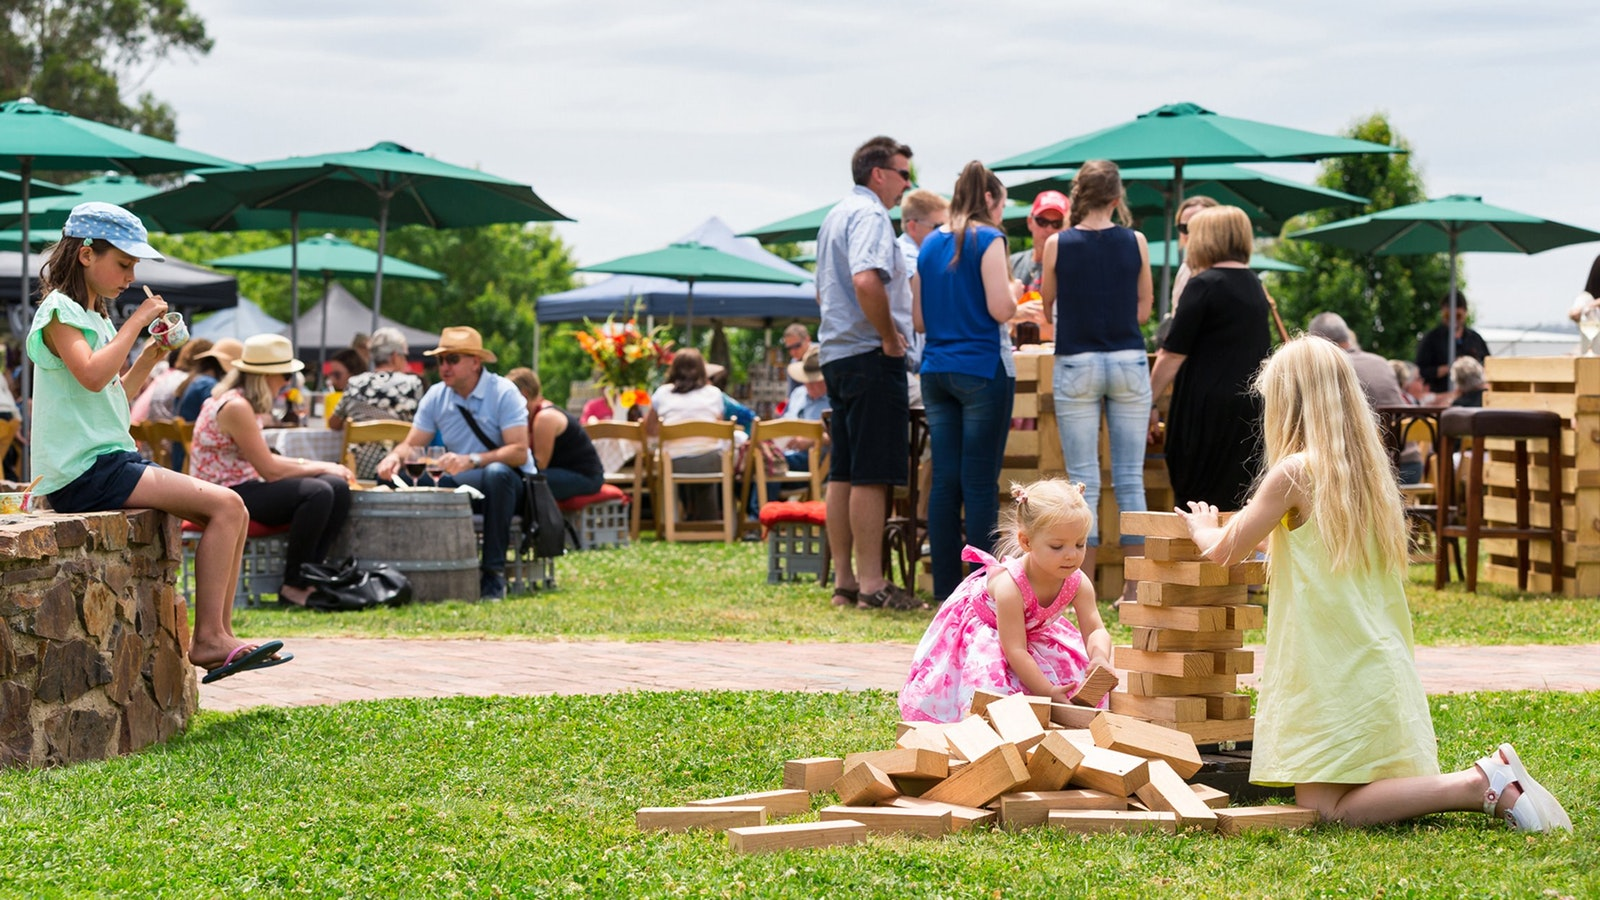 Fun for all the family at Pizzini's Easter Sunday Family Fun Day